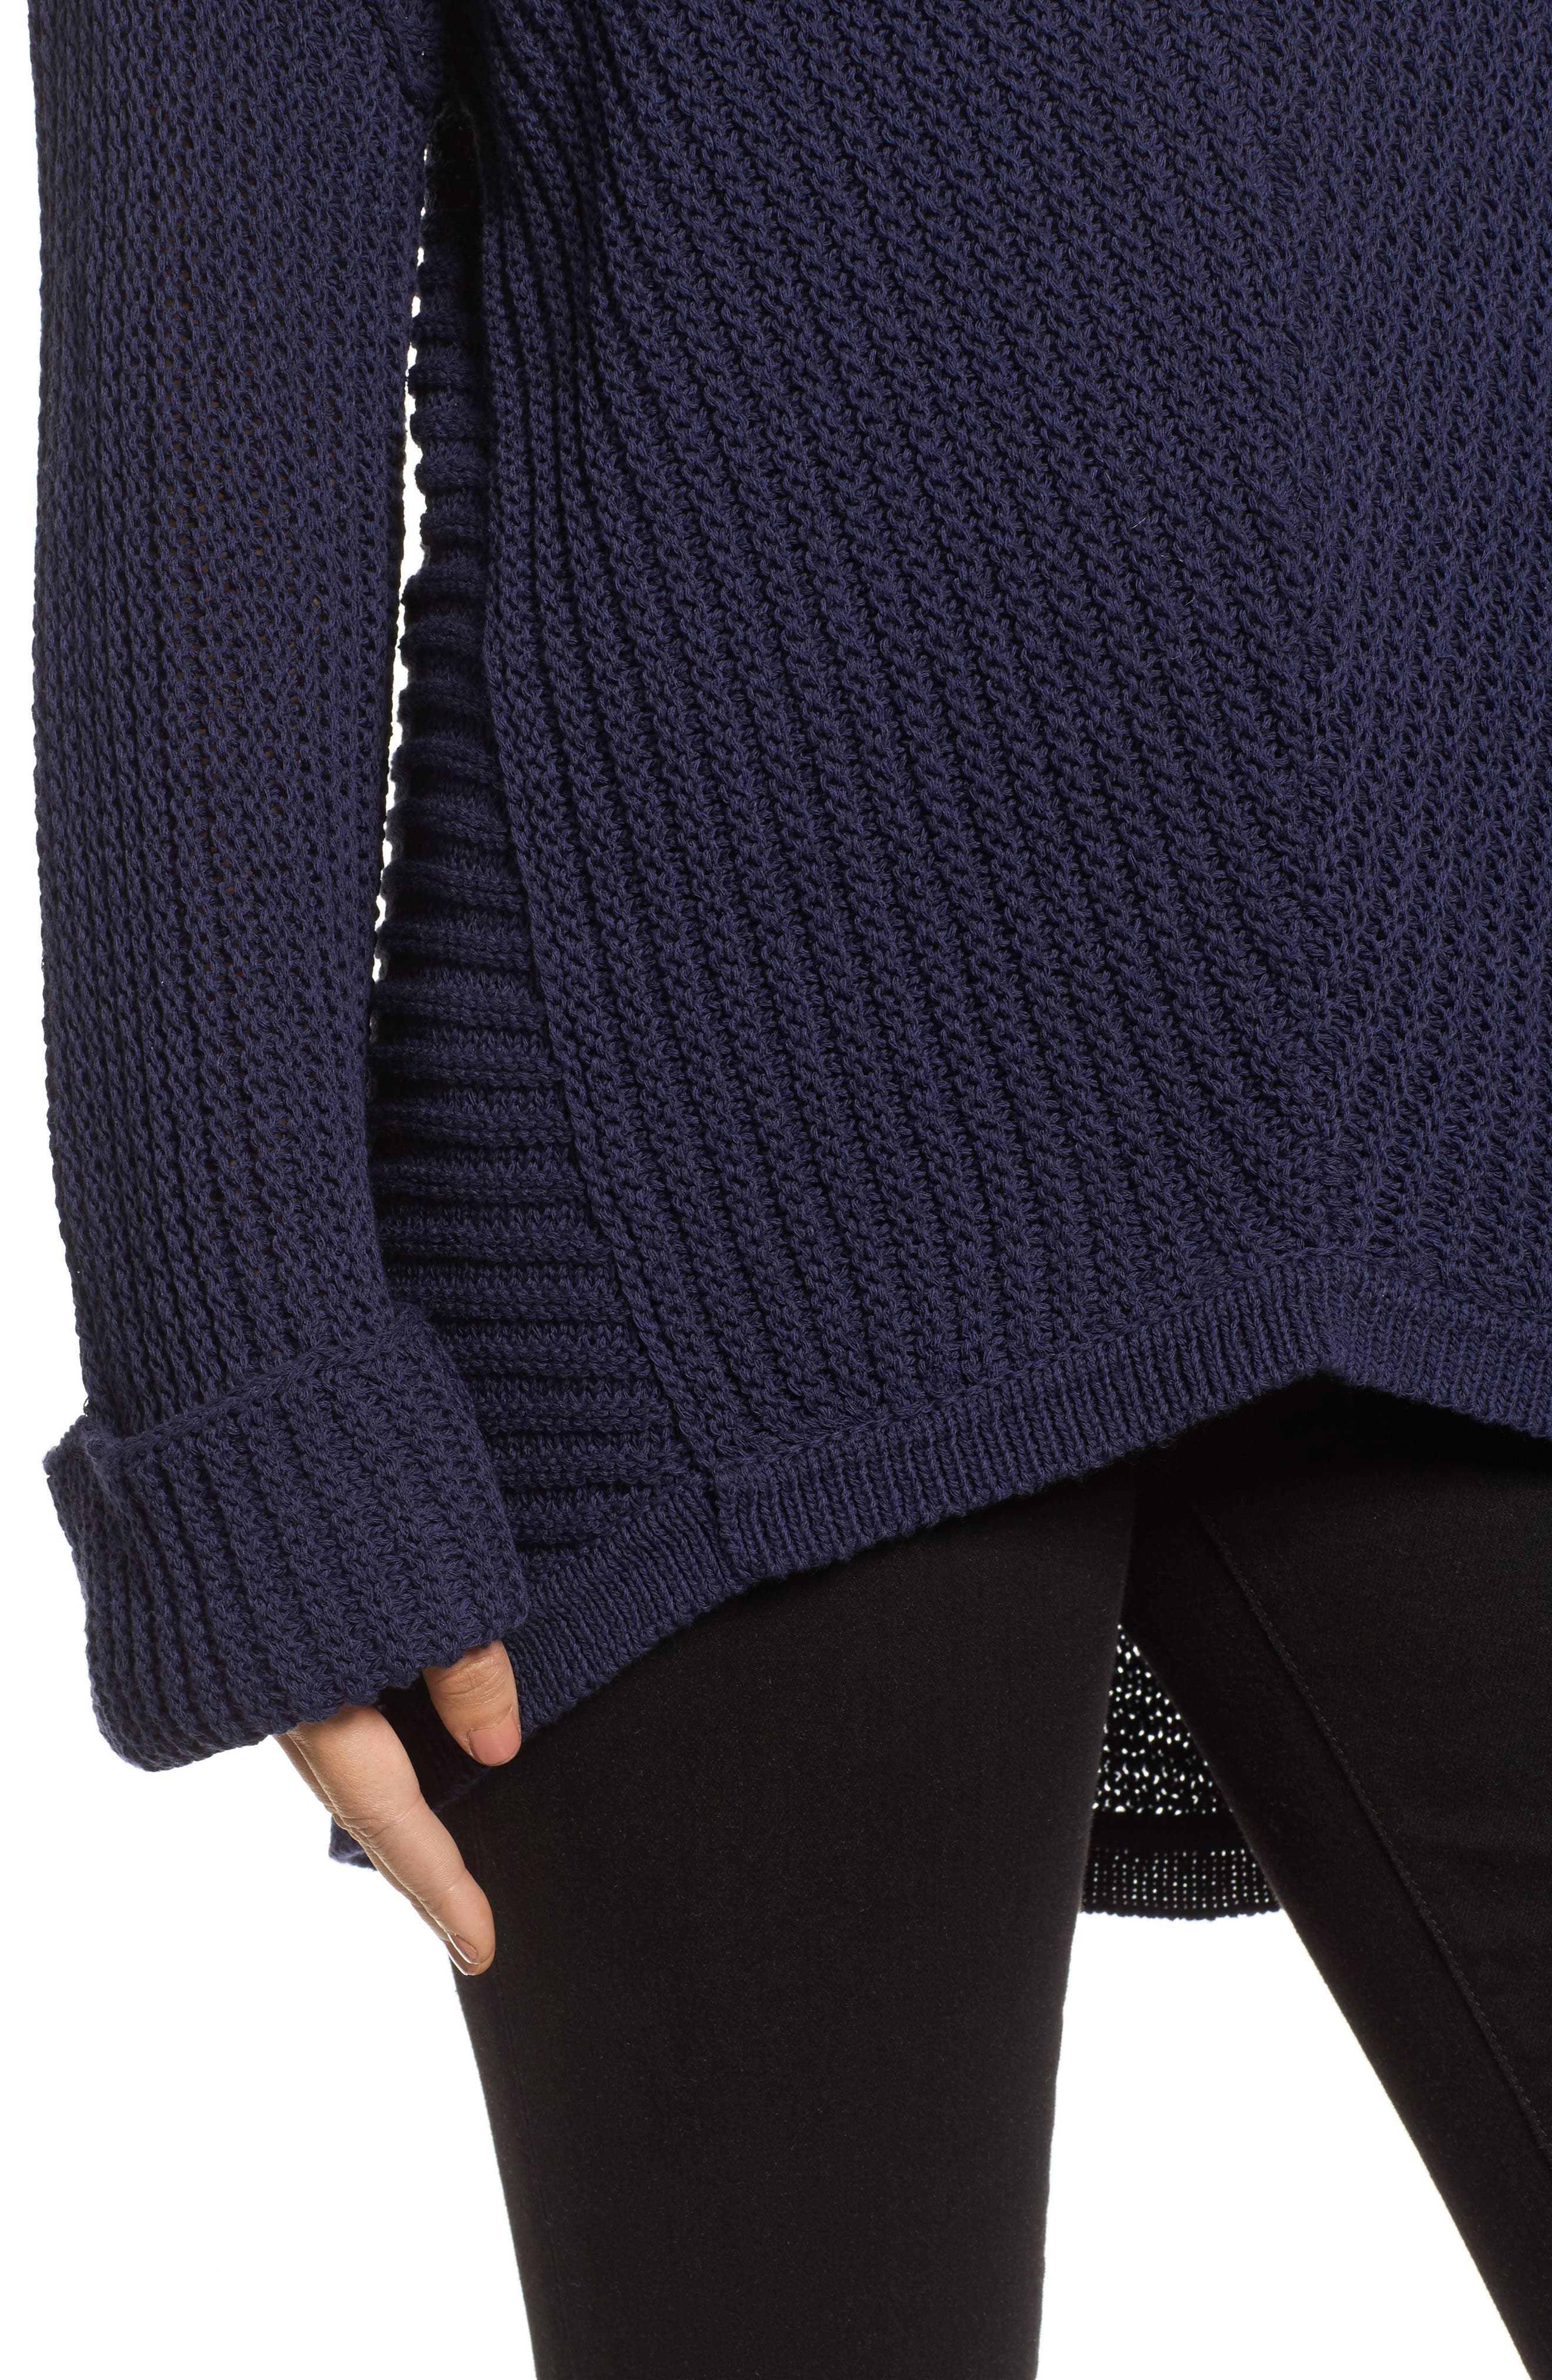 Cuffed Sleeve Sweater,                             Alternate thumbnail 13, color,